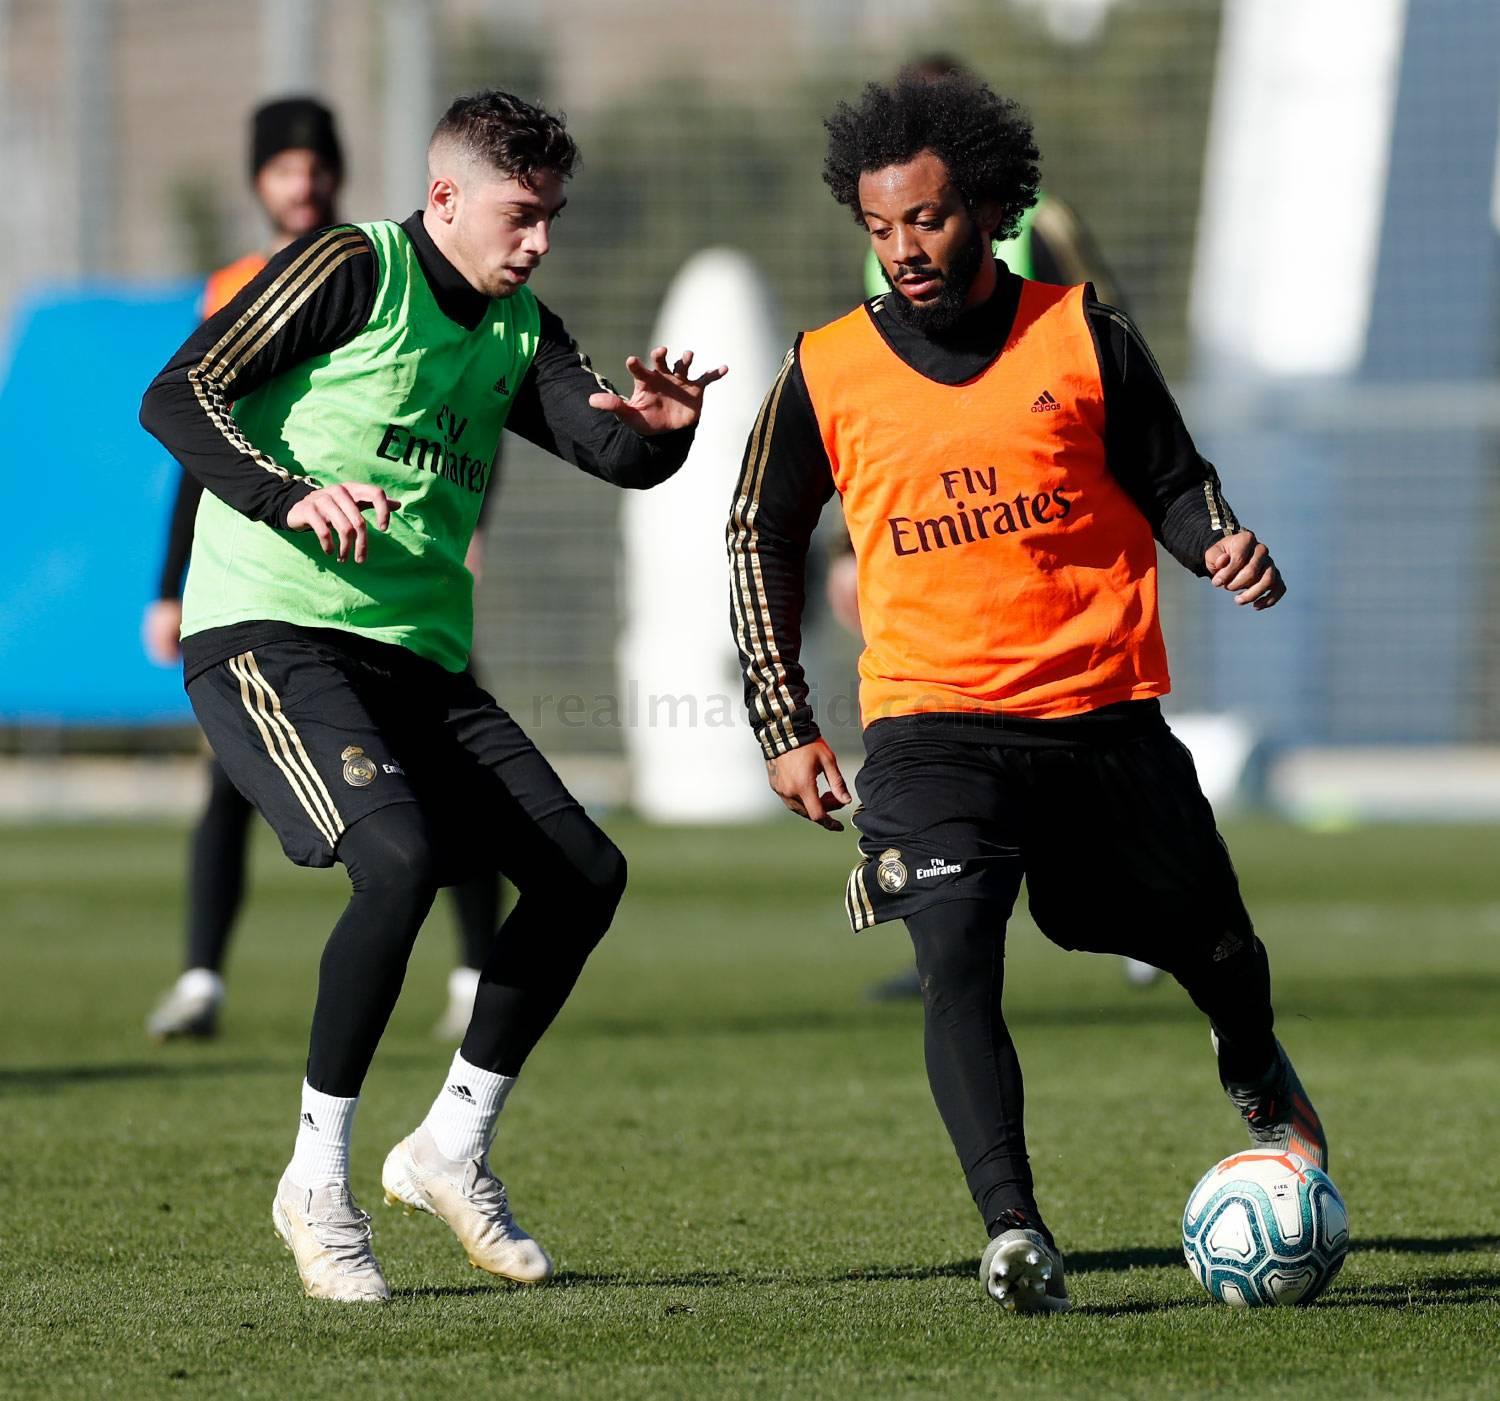 Real Madrid - Entrenamiento del Real Madrid  - 06-01-2020